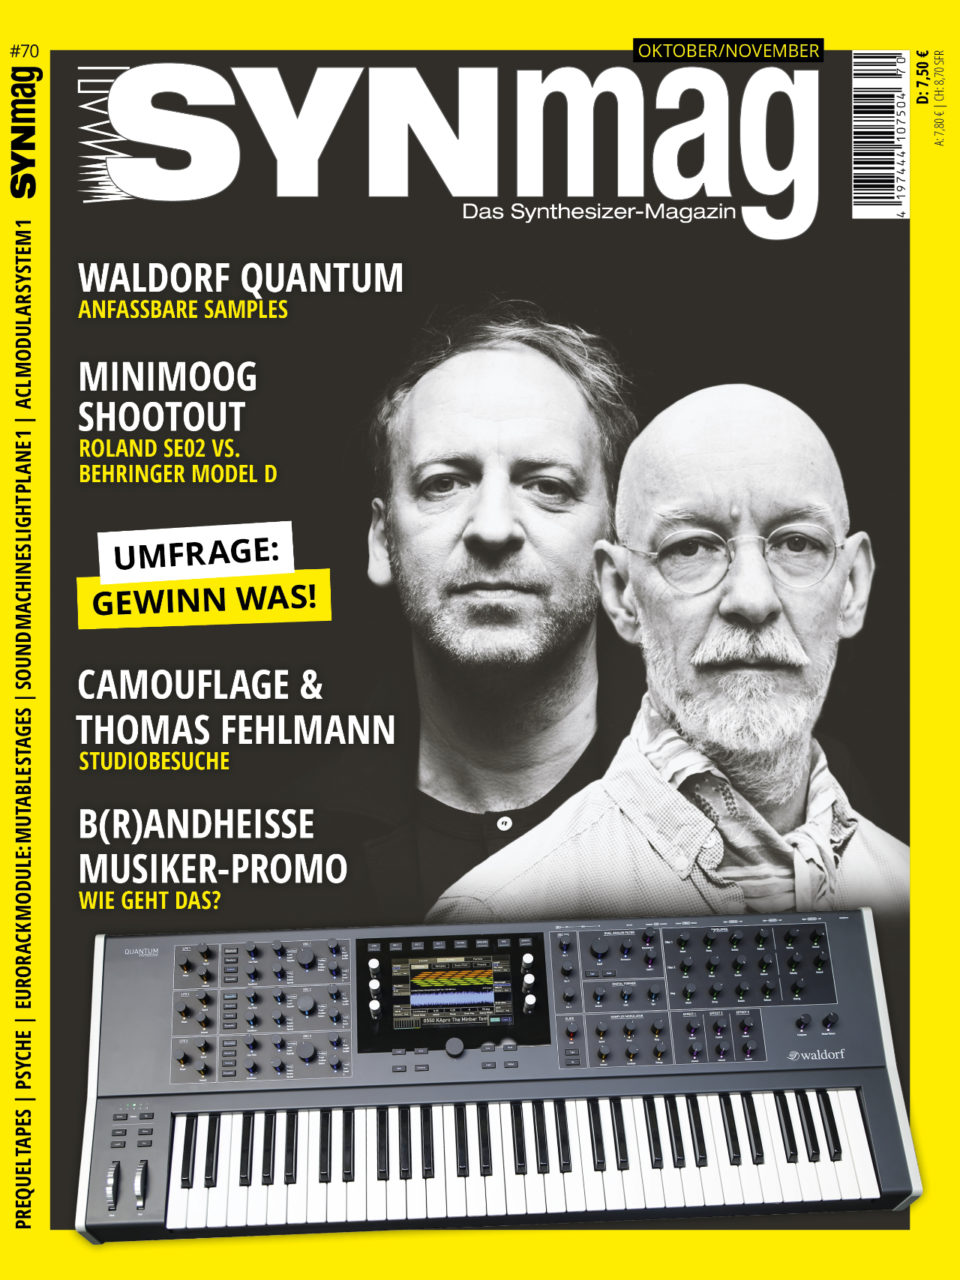 Synmag 70 Das Synthesizer-Magazin